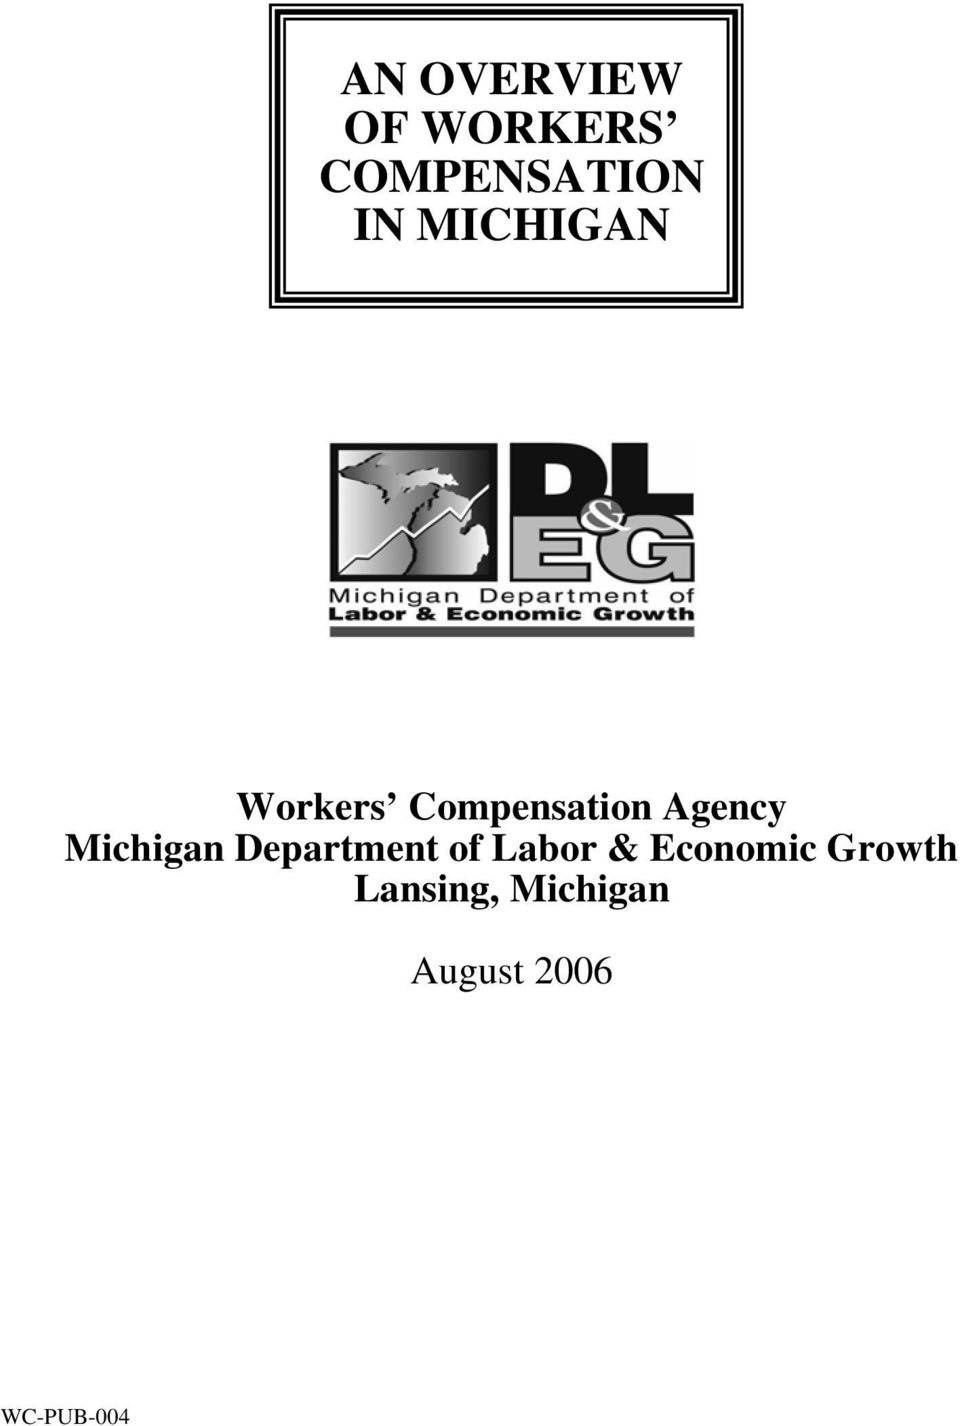 Michigan Department of Labor & Economic